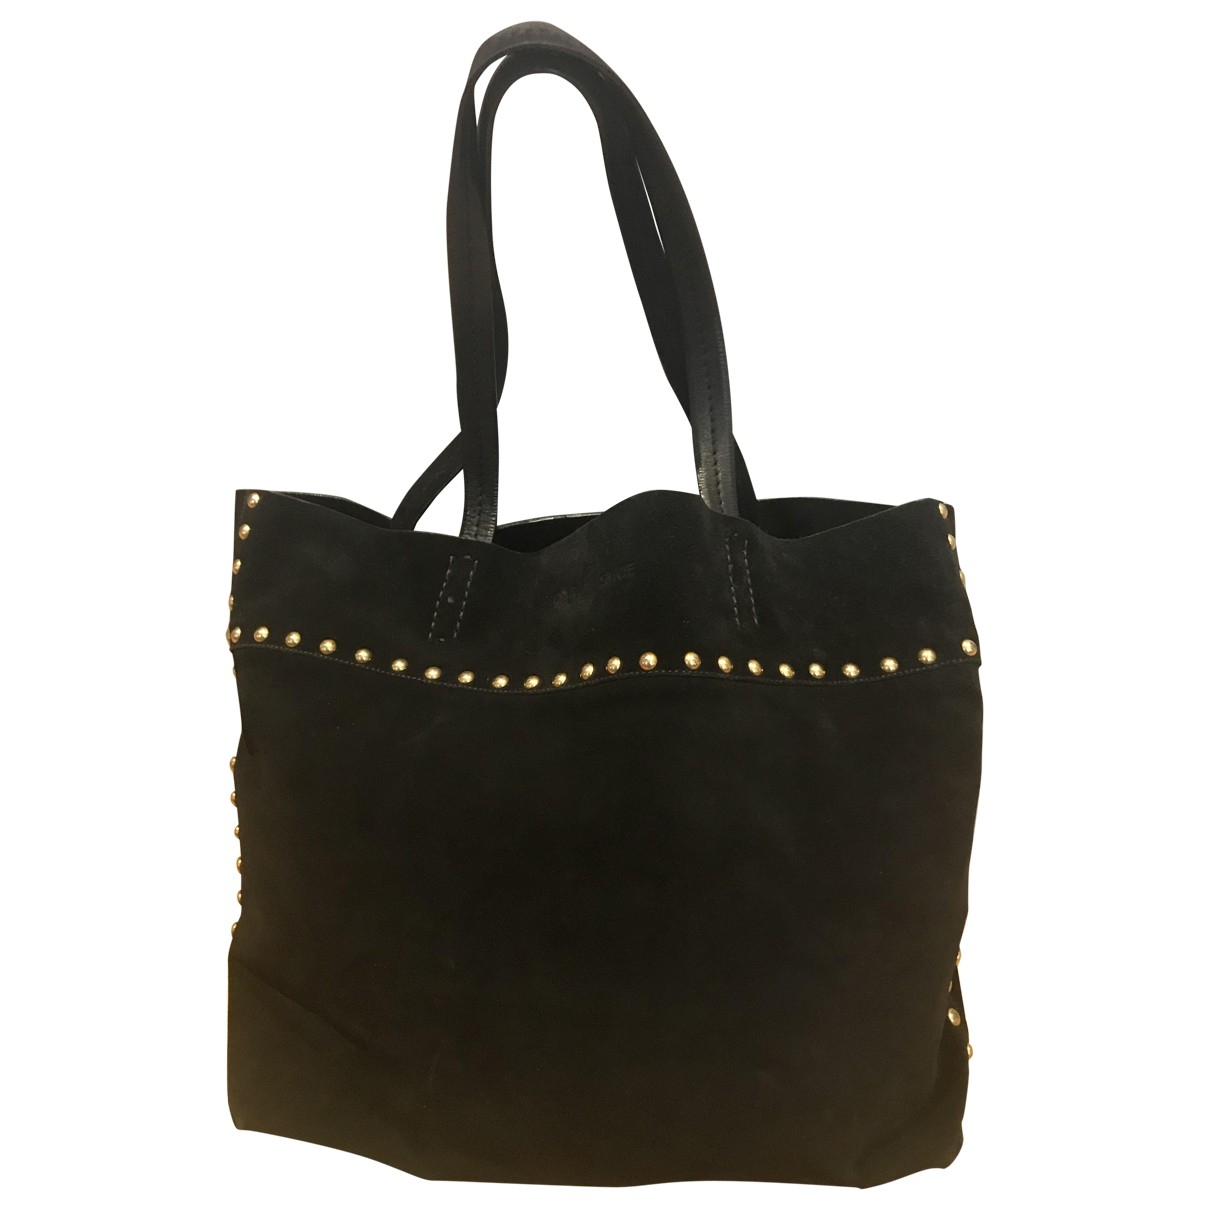 Carshoe \N Black Suede handbag for Women \N